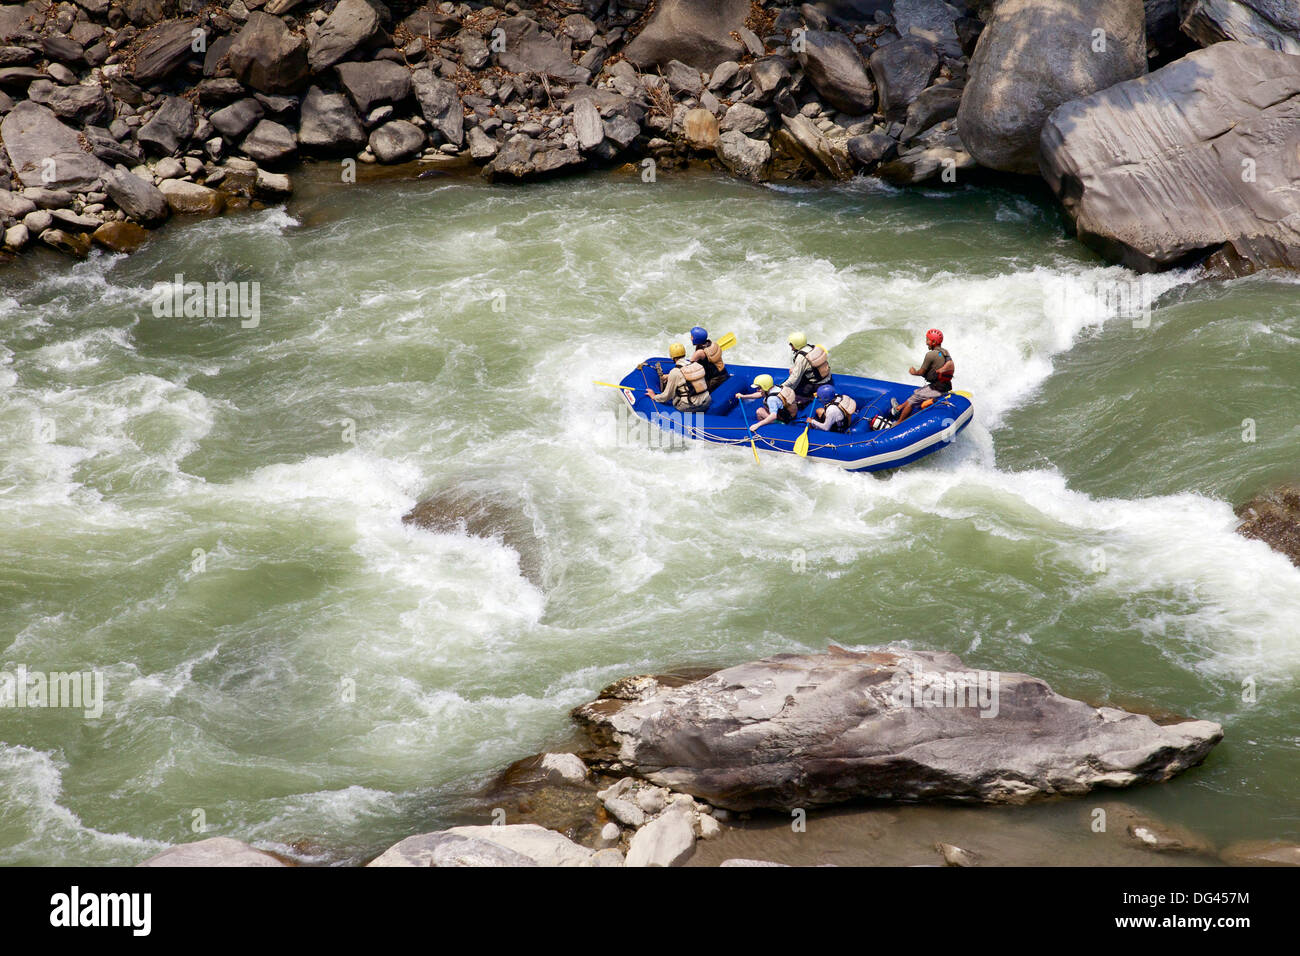 Whitewater rafting on Bhote Koshi river, Nepal, Asia - Stock Image